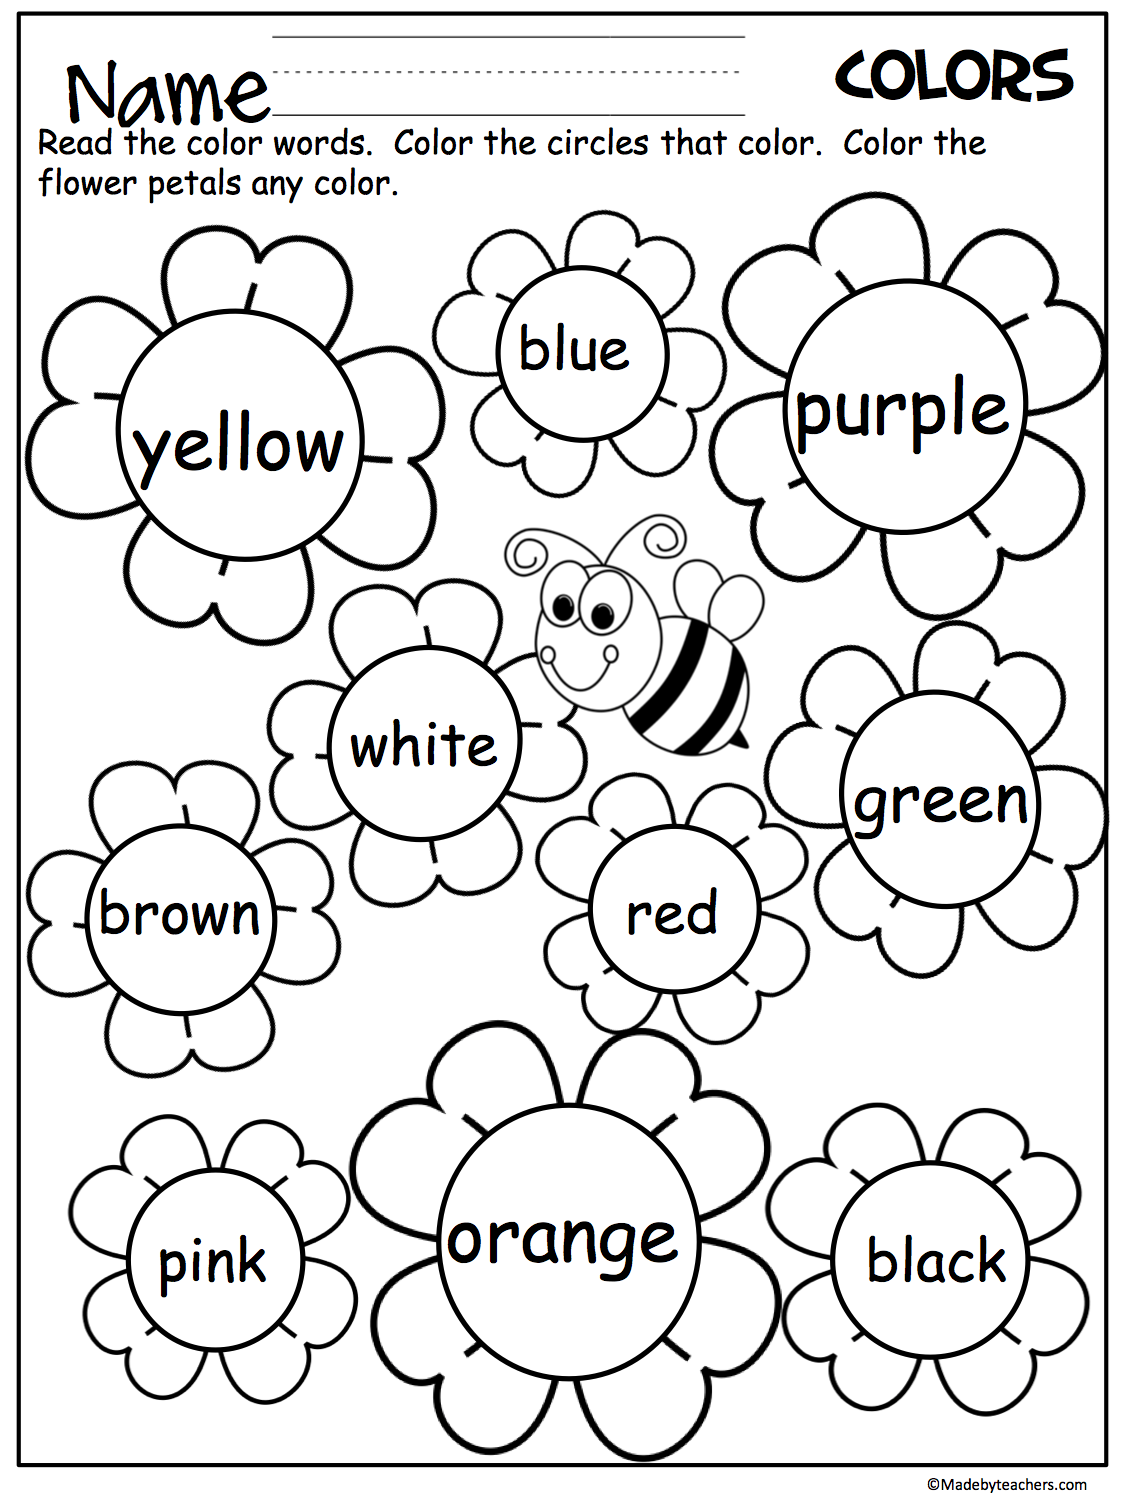 Irresistible image regarding color activities for preschool printable